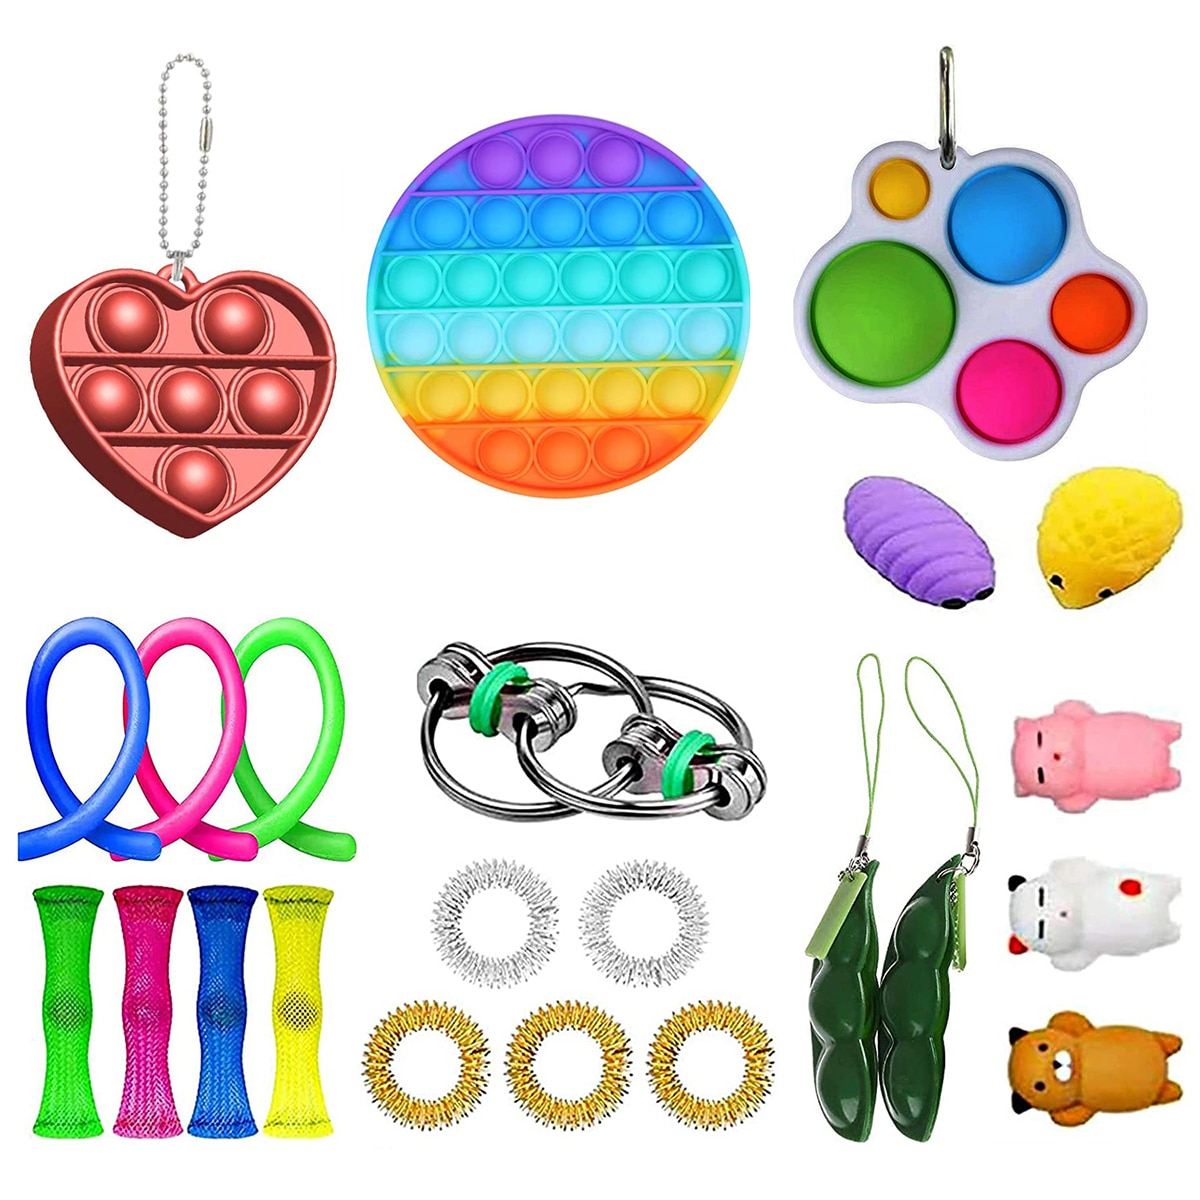 23PCS Fidget Sensory Toy Set Stretchy Strings Adults Kids Stress Relief Toys Autism Special Needs Anti Stress Toys